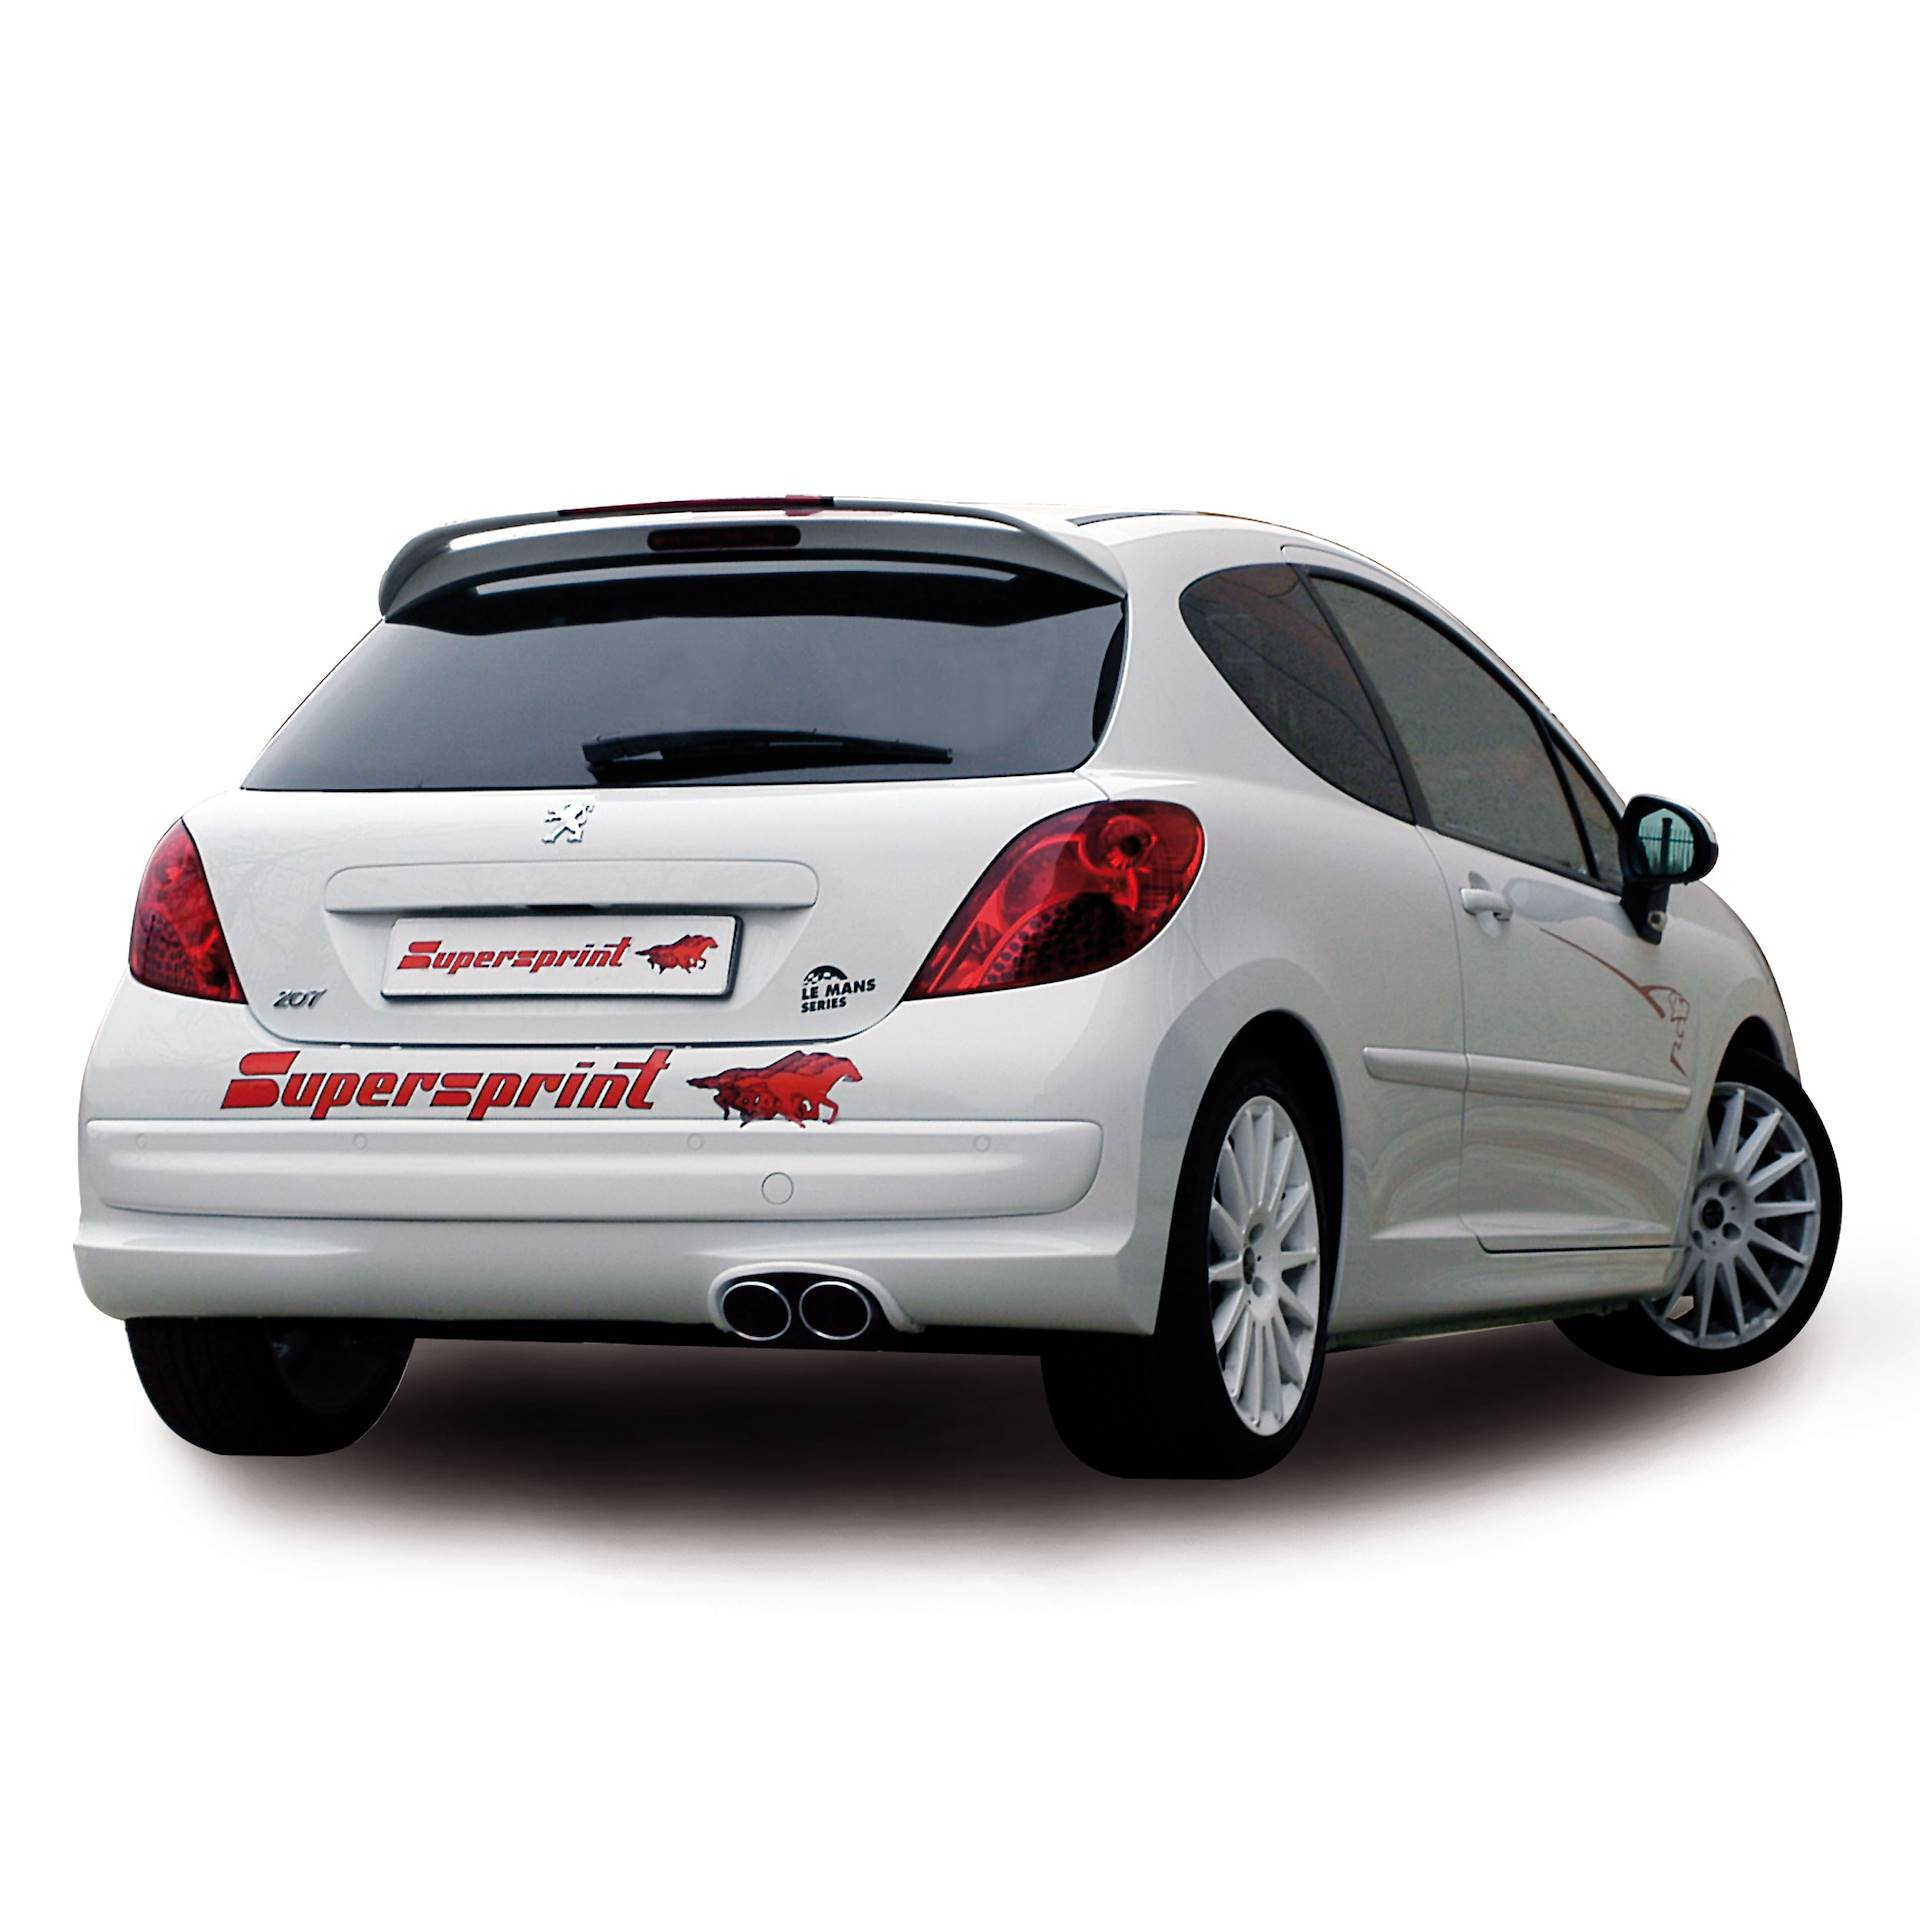 peugeot 207 gti rc 16v 174 hp 39 08 peugeot exhaust systems. Black Bedroom Furniture Sets. Home Design Ideas